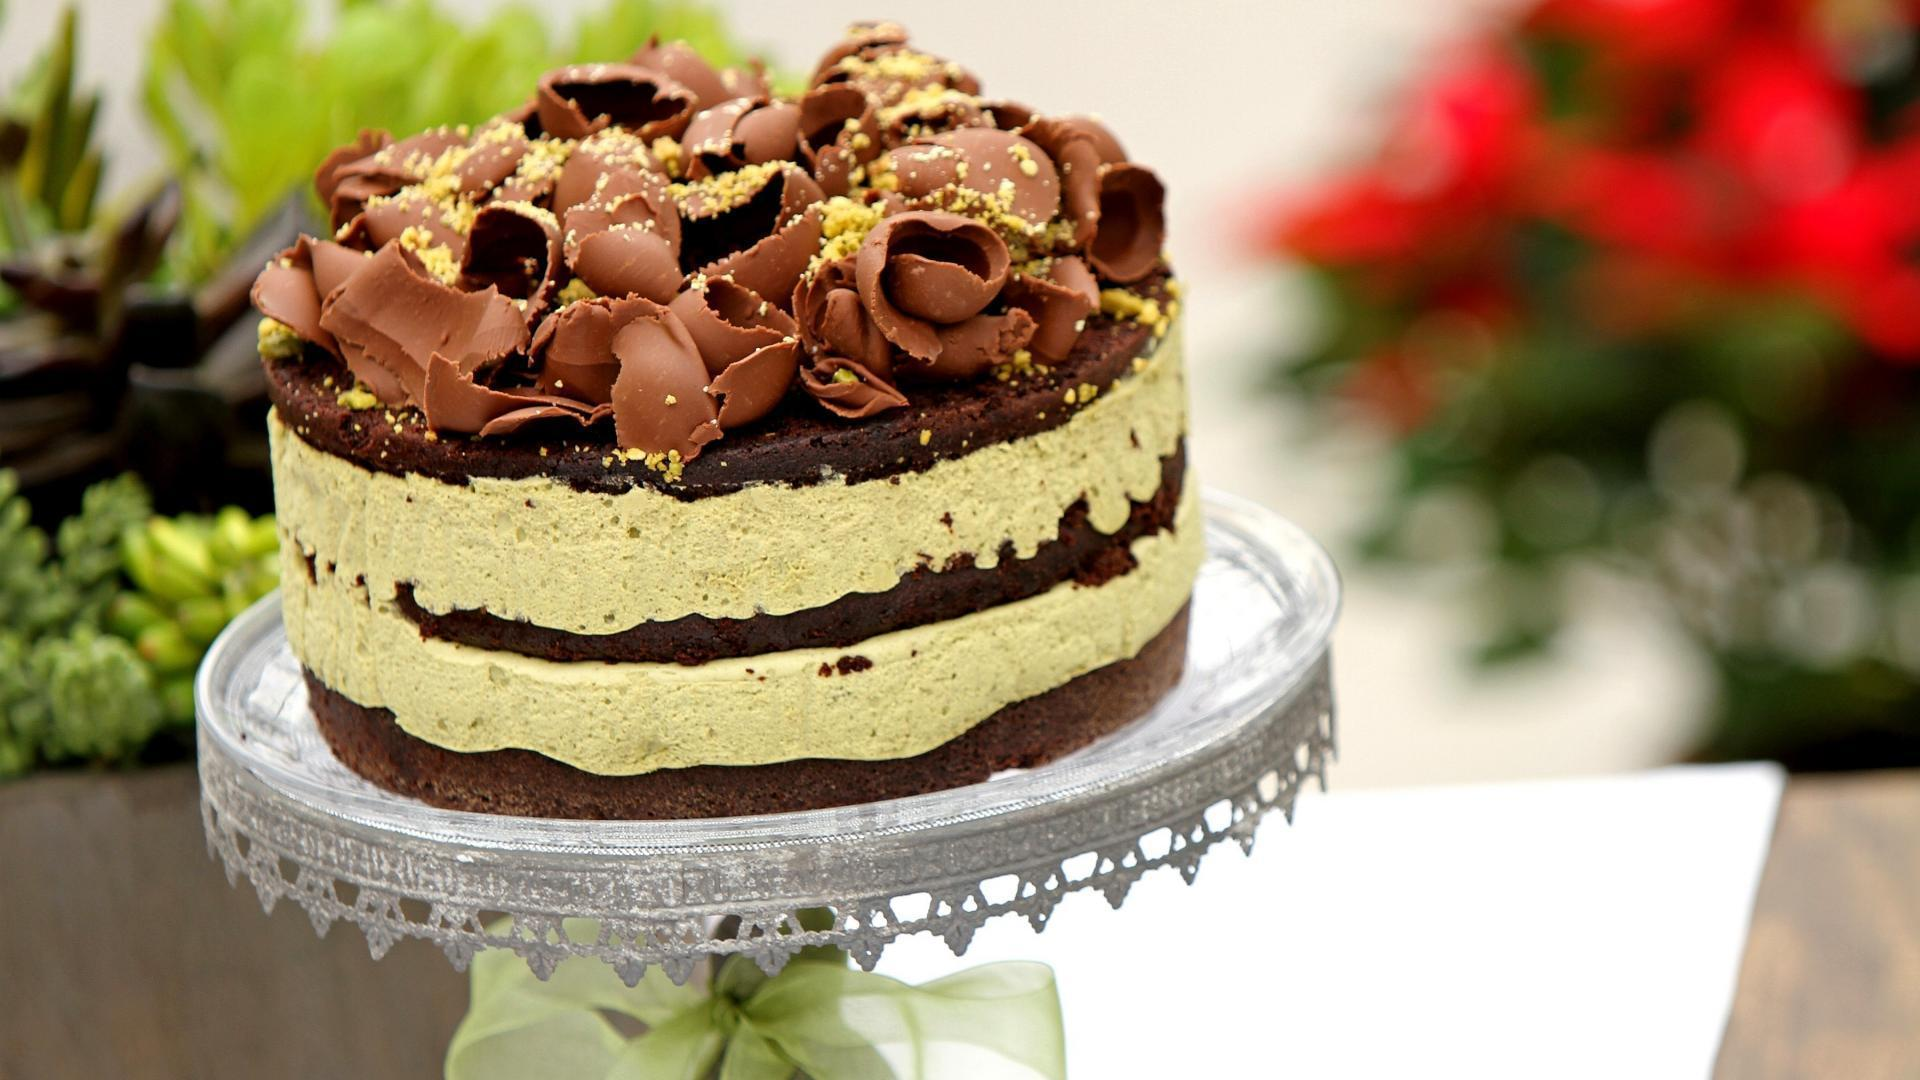 Birthday Cakes Wallpapers - Wallpaper Cave